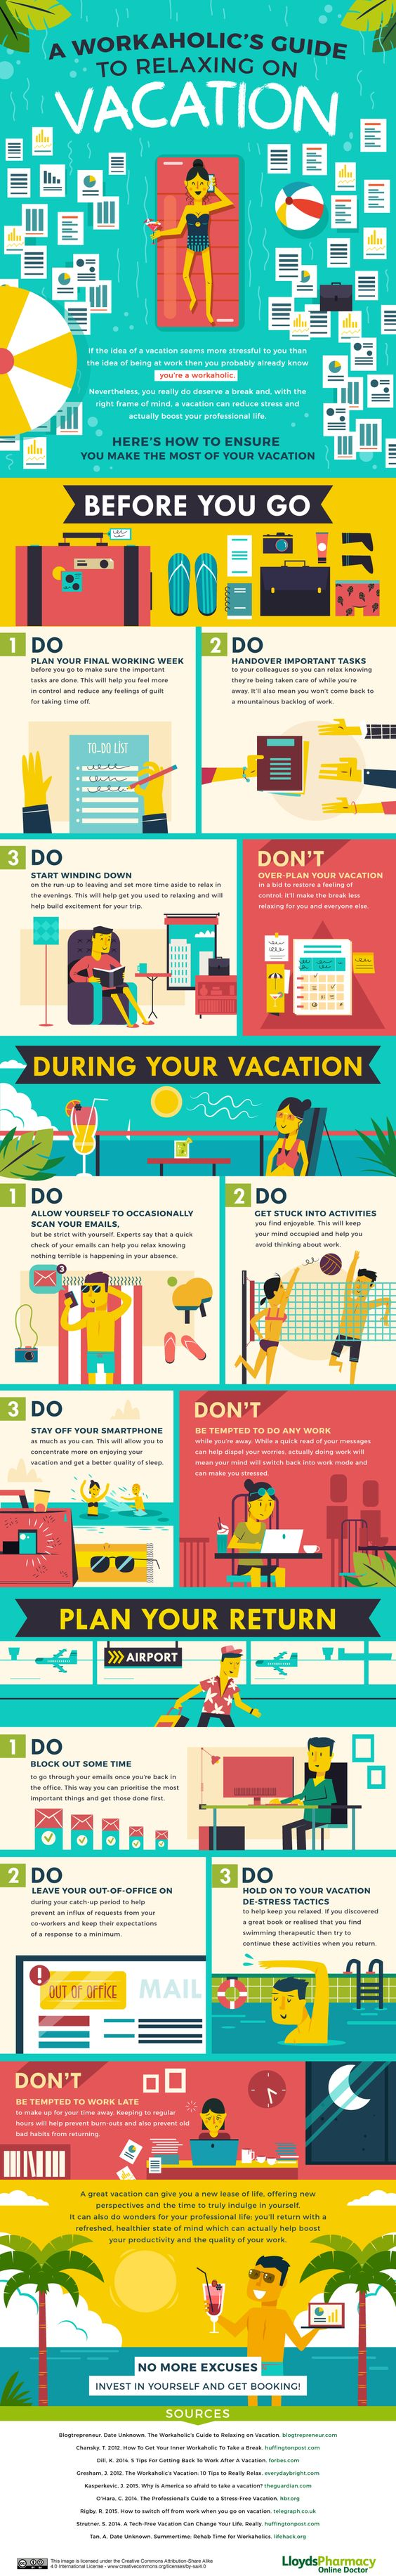 Great tips to avoid thinking about work on your next vacay!  #workaholic #vacation #elax: